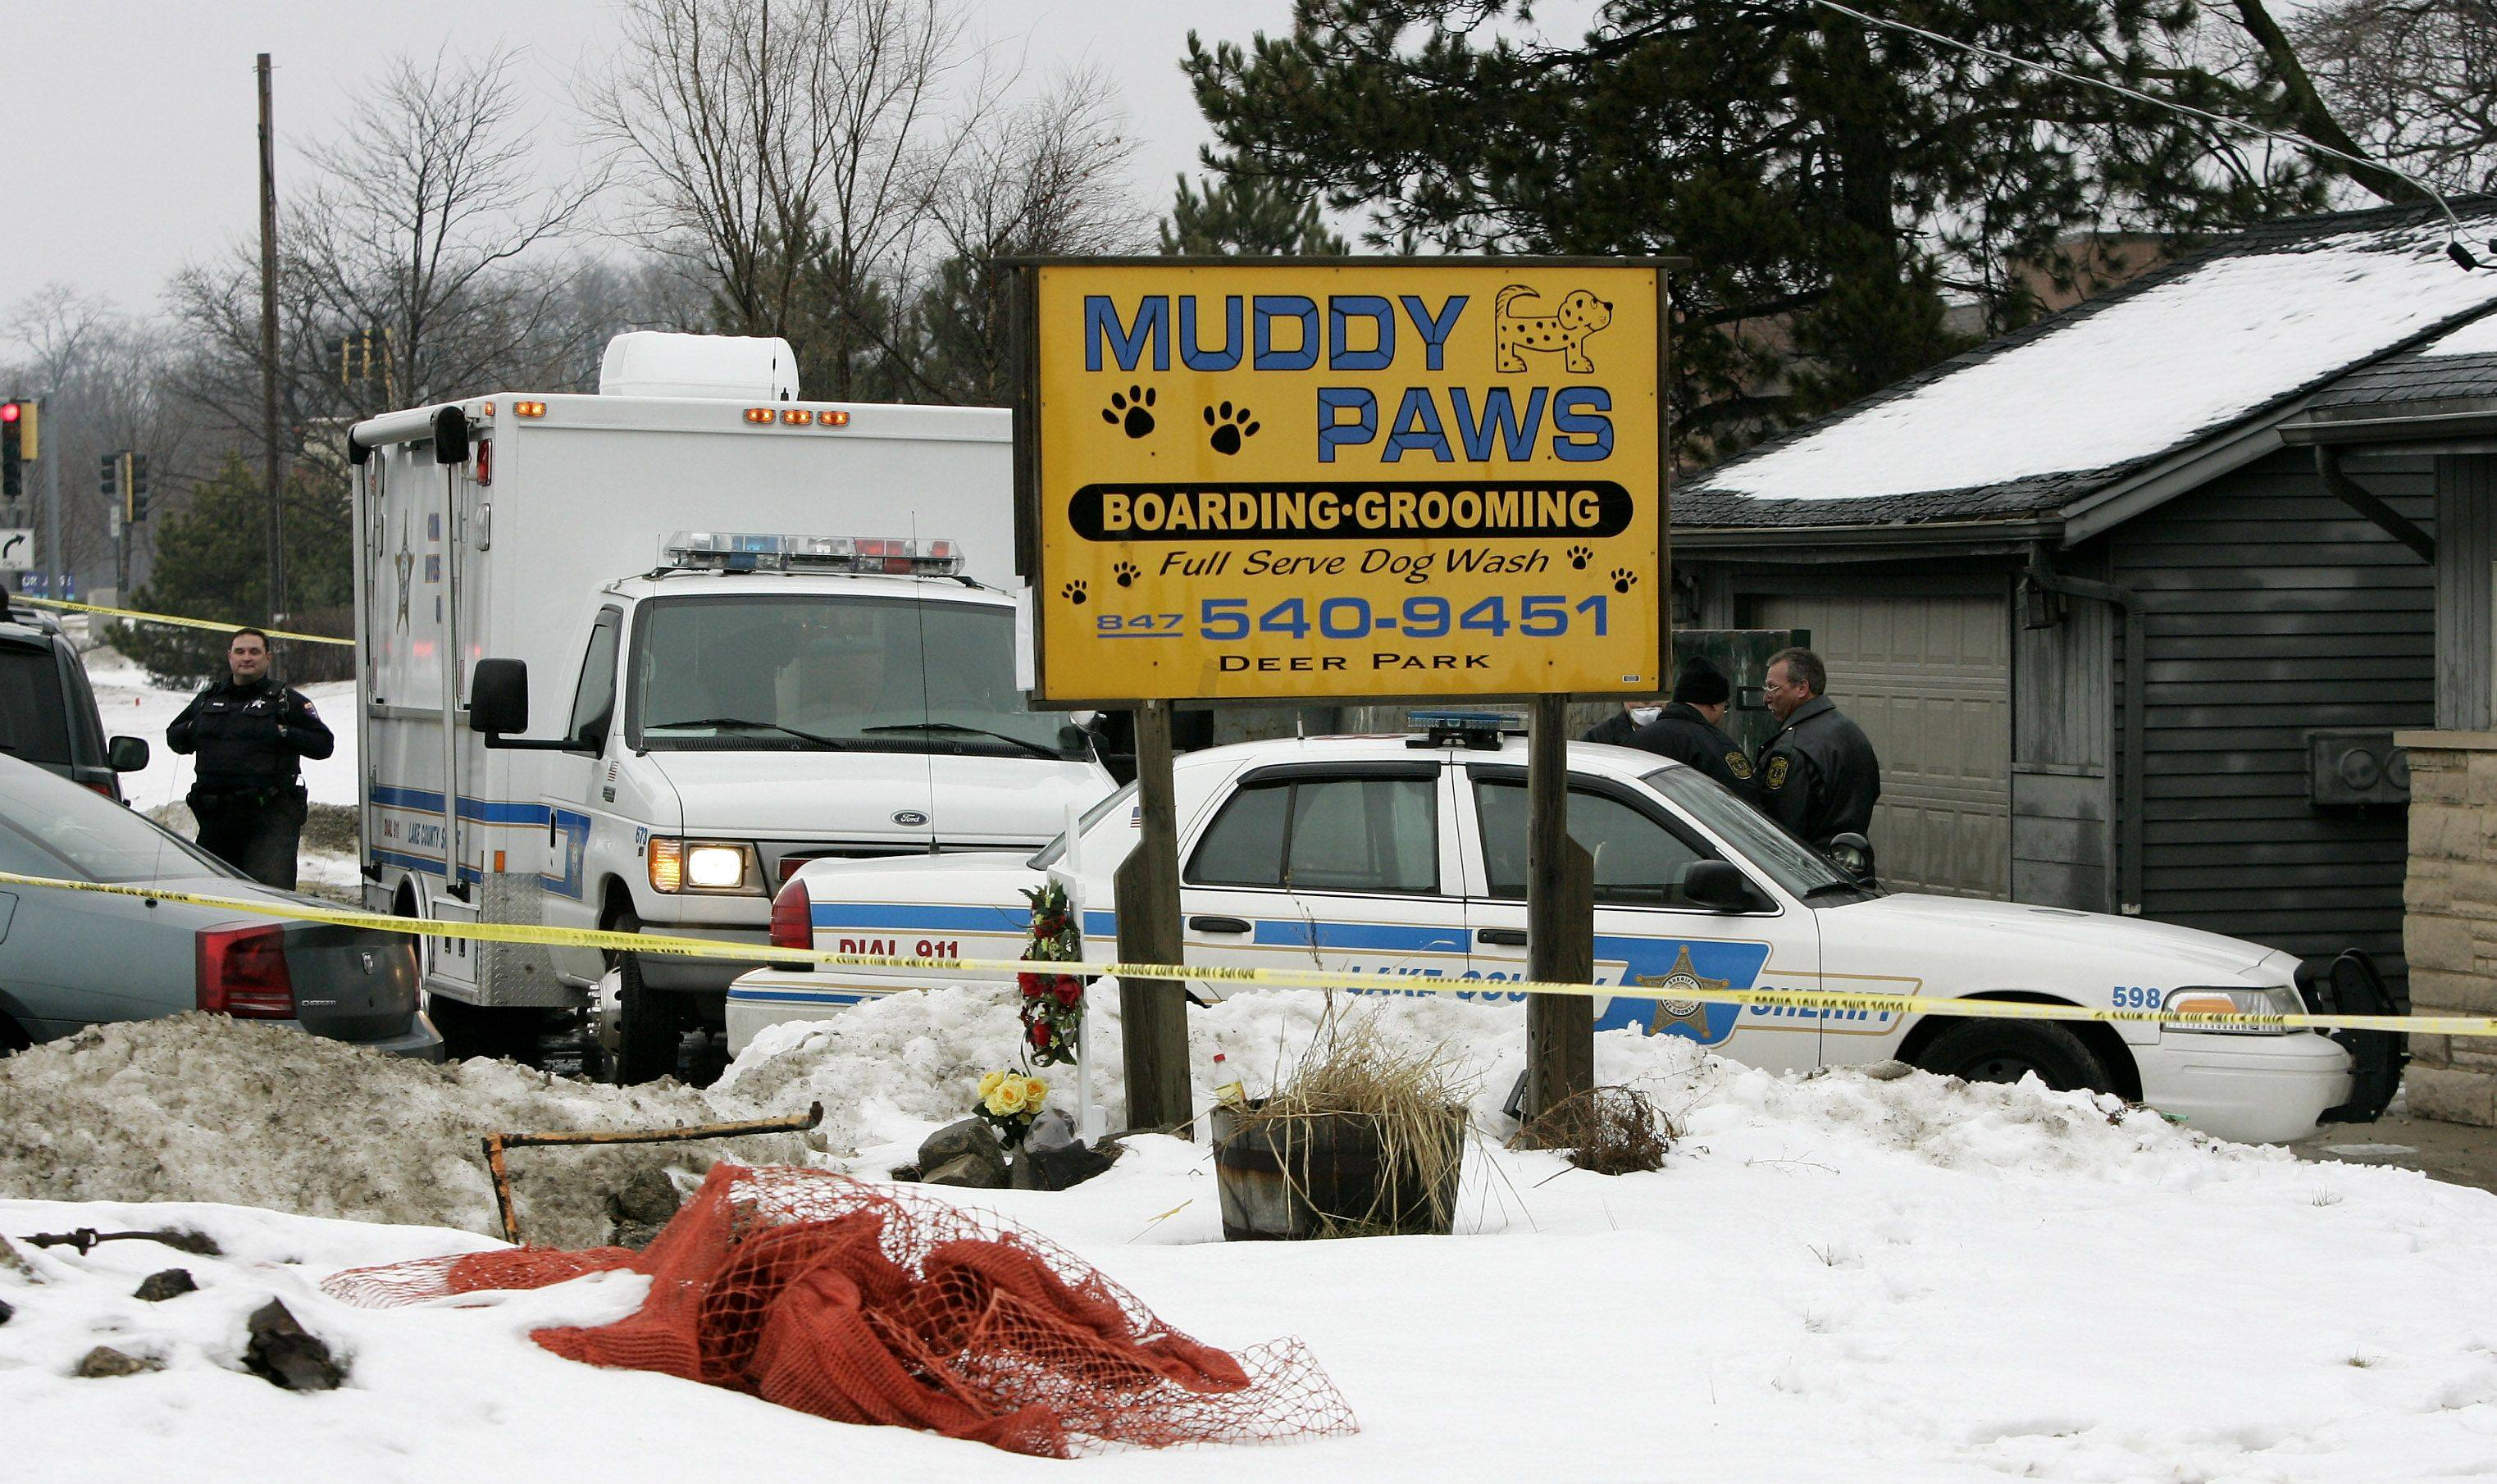 Lake County sheriff's investigators Kildeer